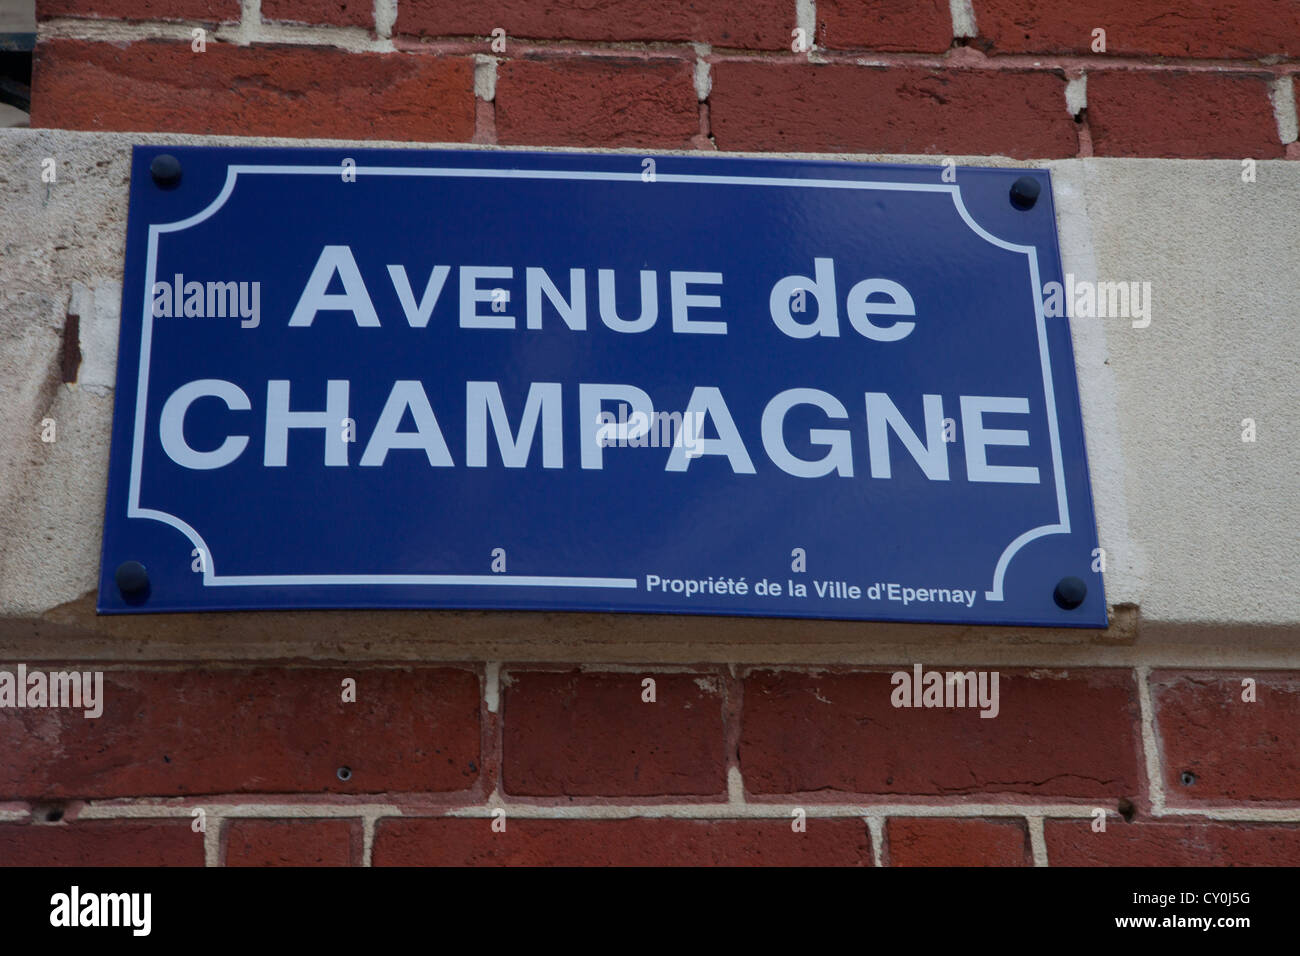 'rue de champagne' were all famous campagne-companies are located - Stock Image